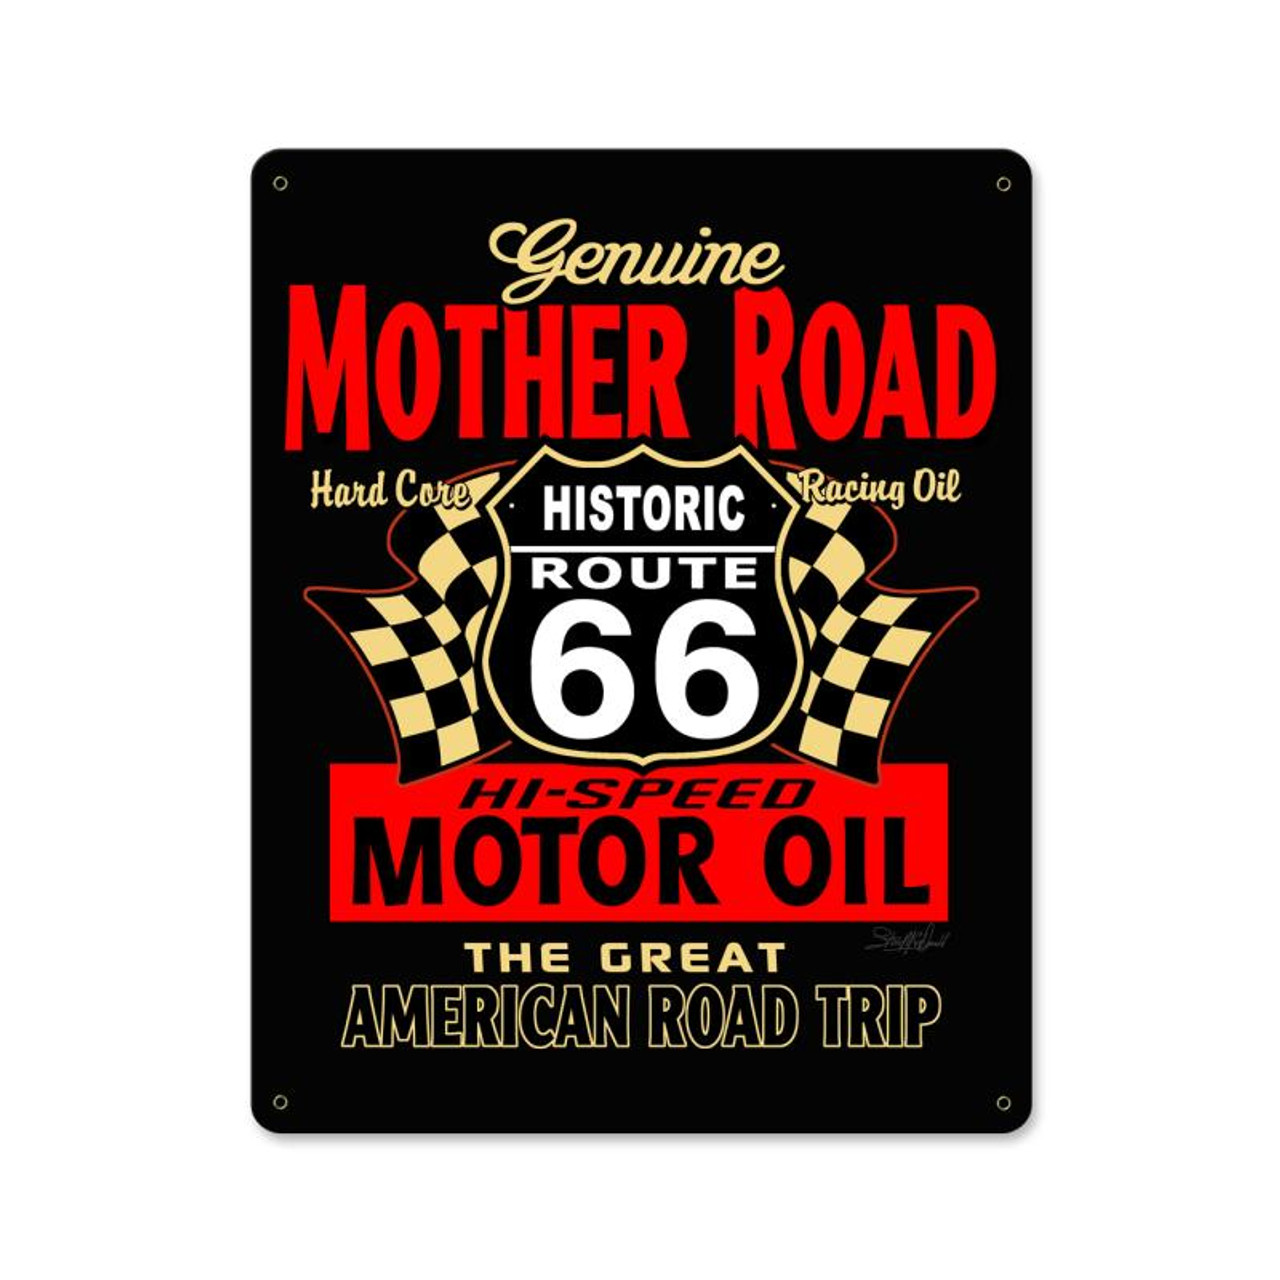 Mother Road Motor Oil Metal Sign 12 x 15 Inches